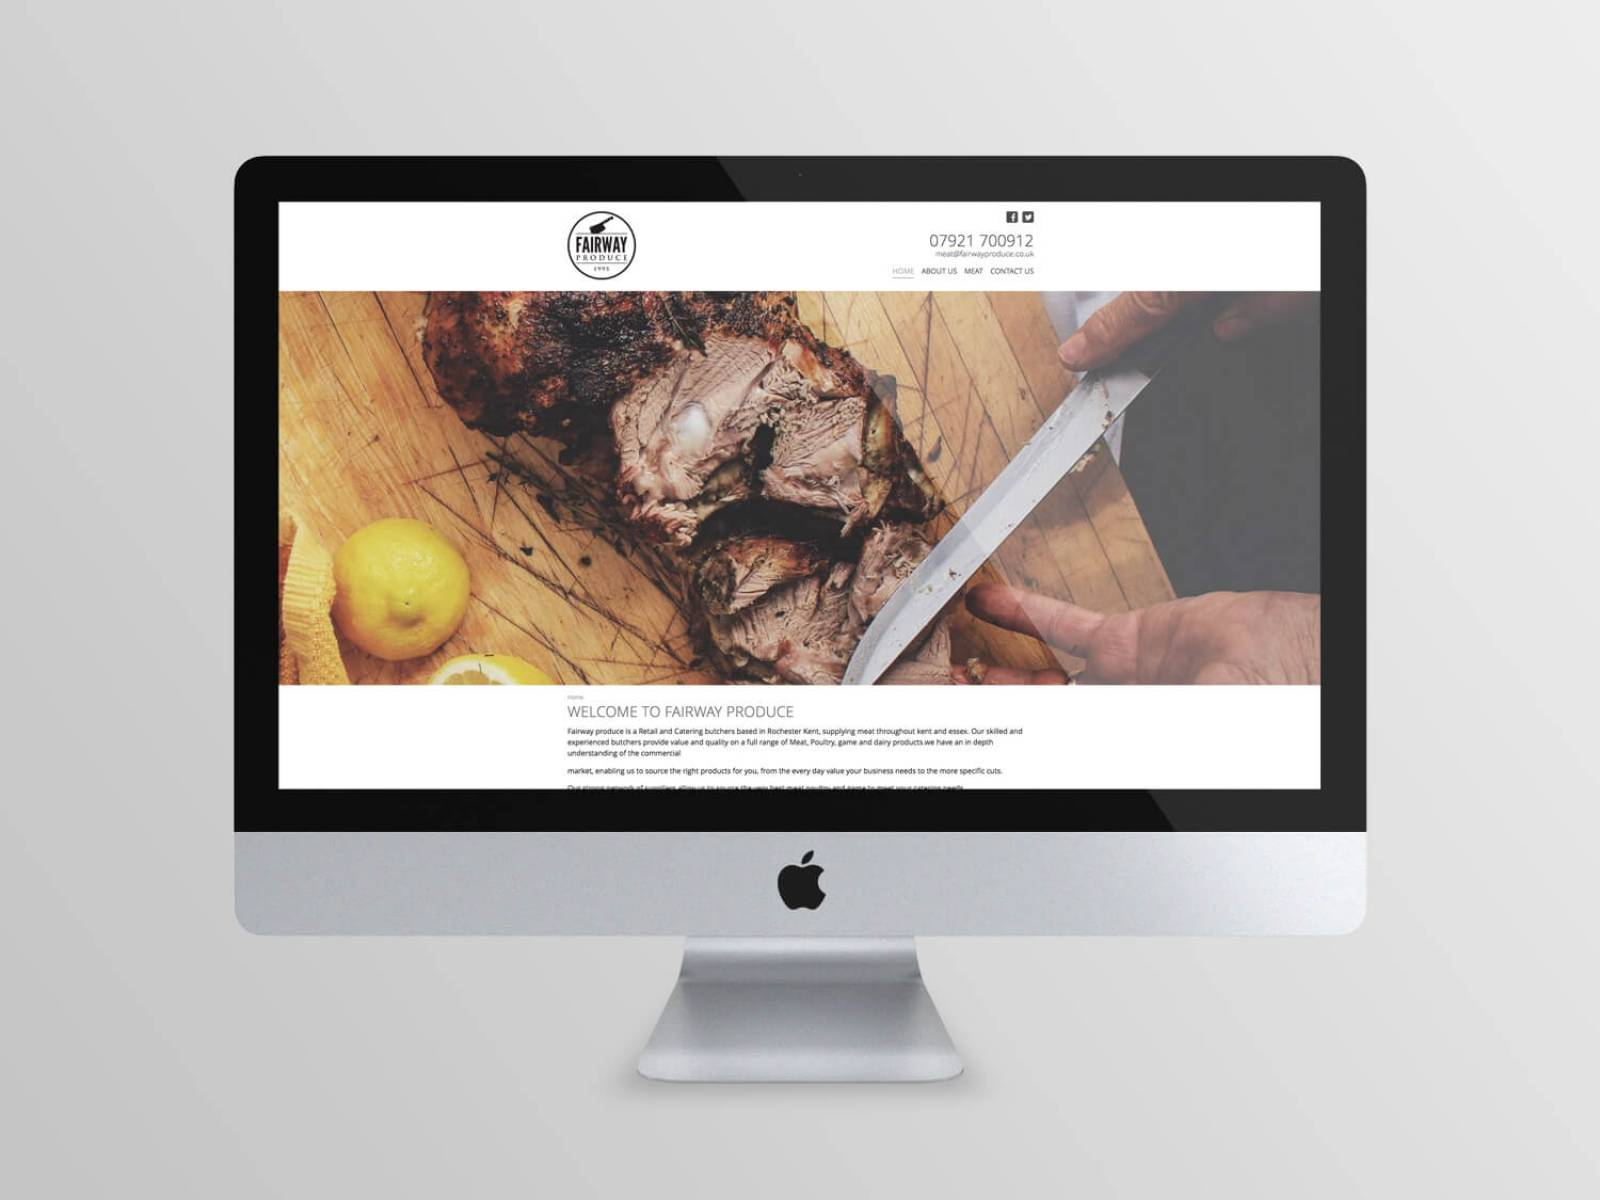 Fairway-produce-website-design-agency-graphic-design-canterbury.jpg